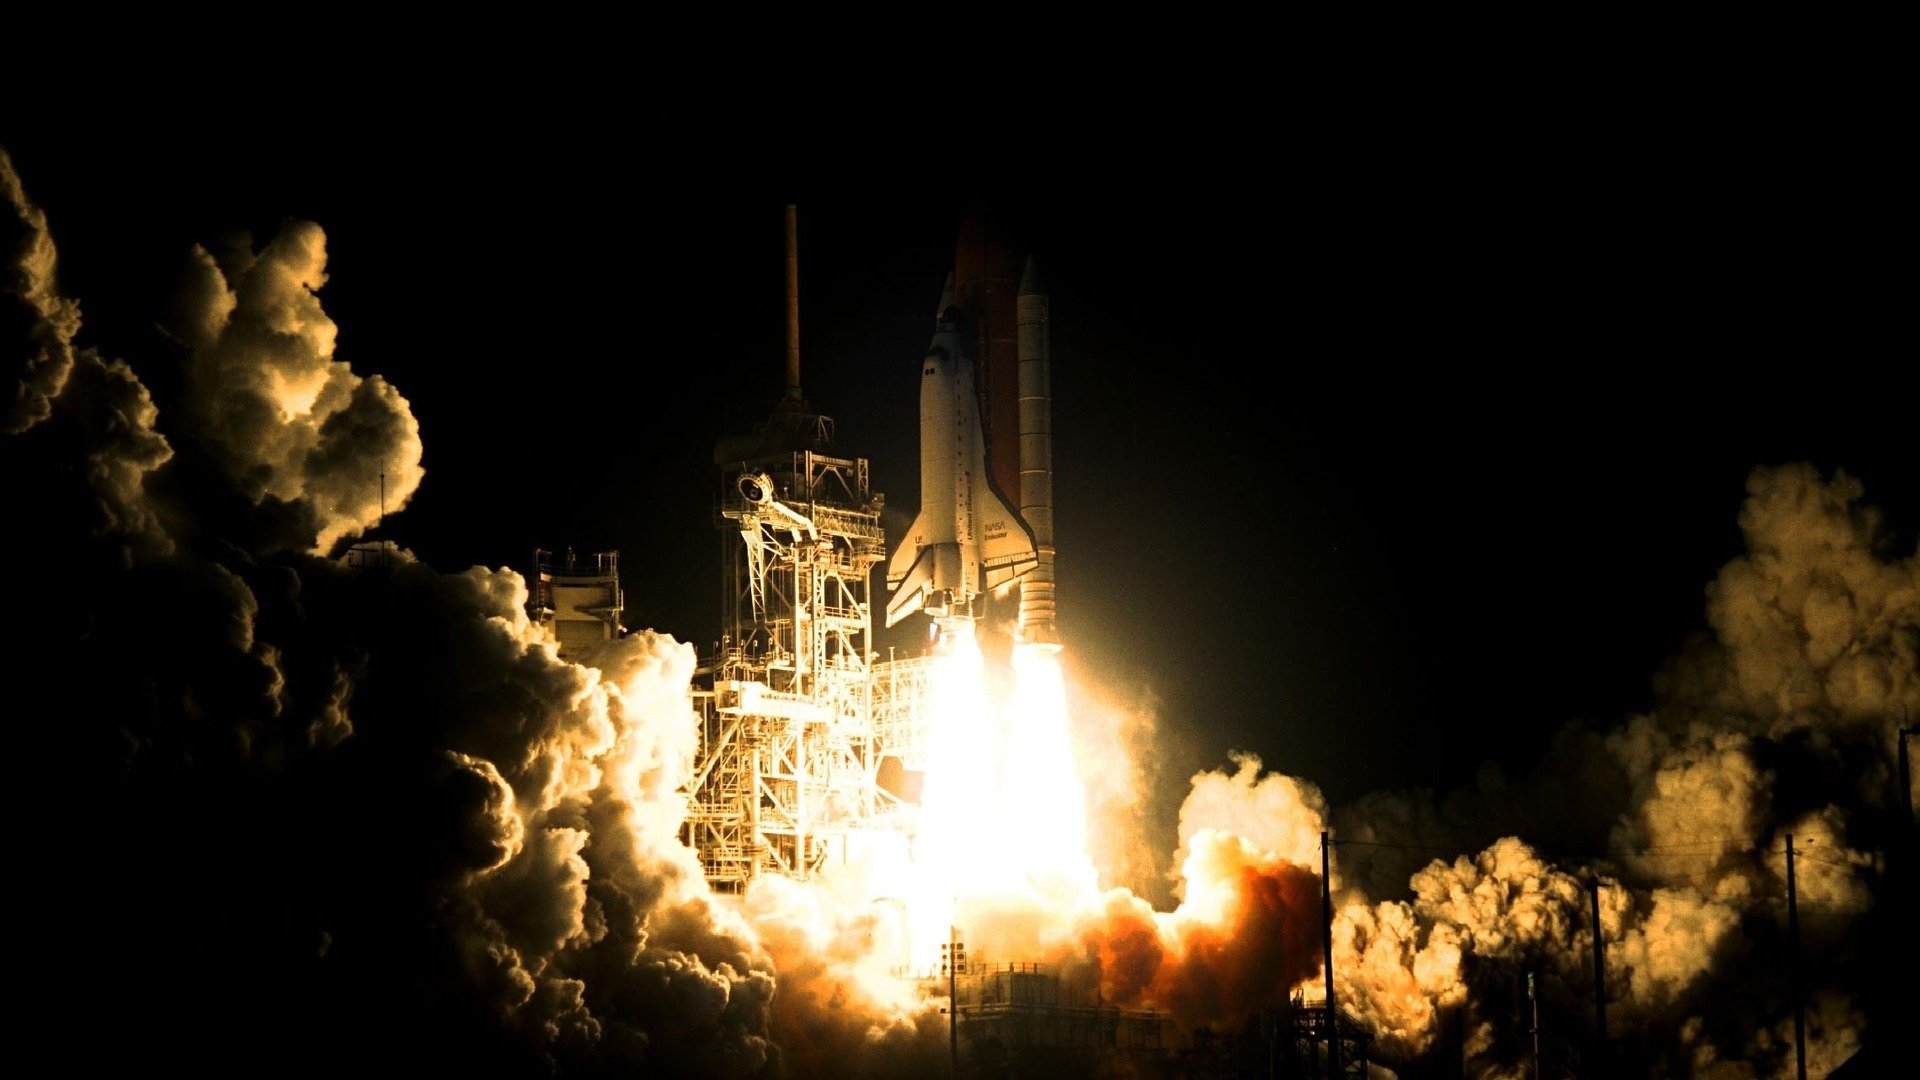 NASA Shuttle Launch at night wallpaper.jpg